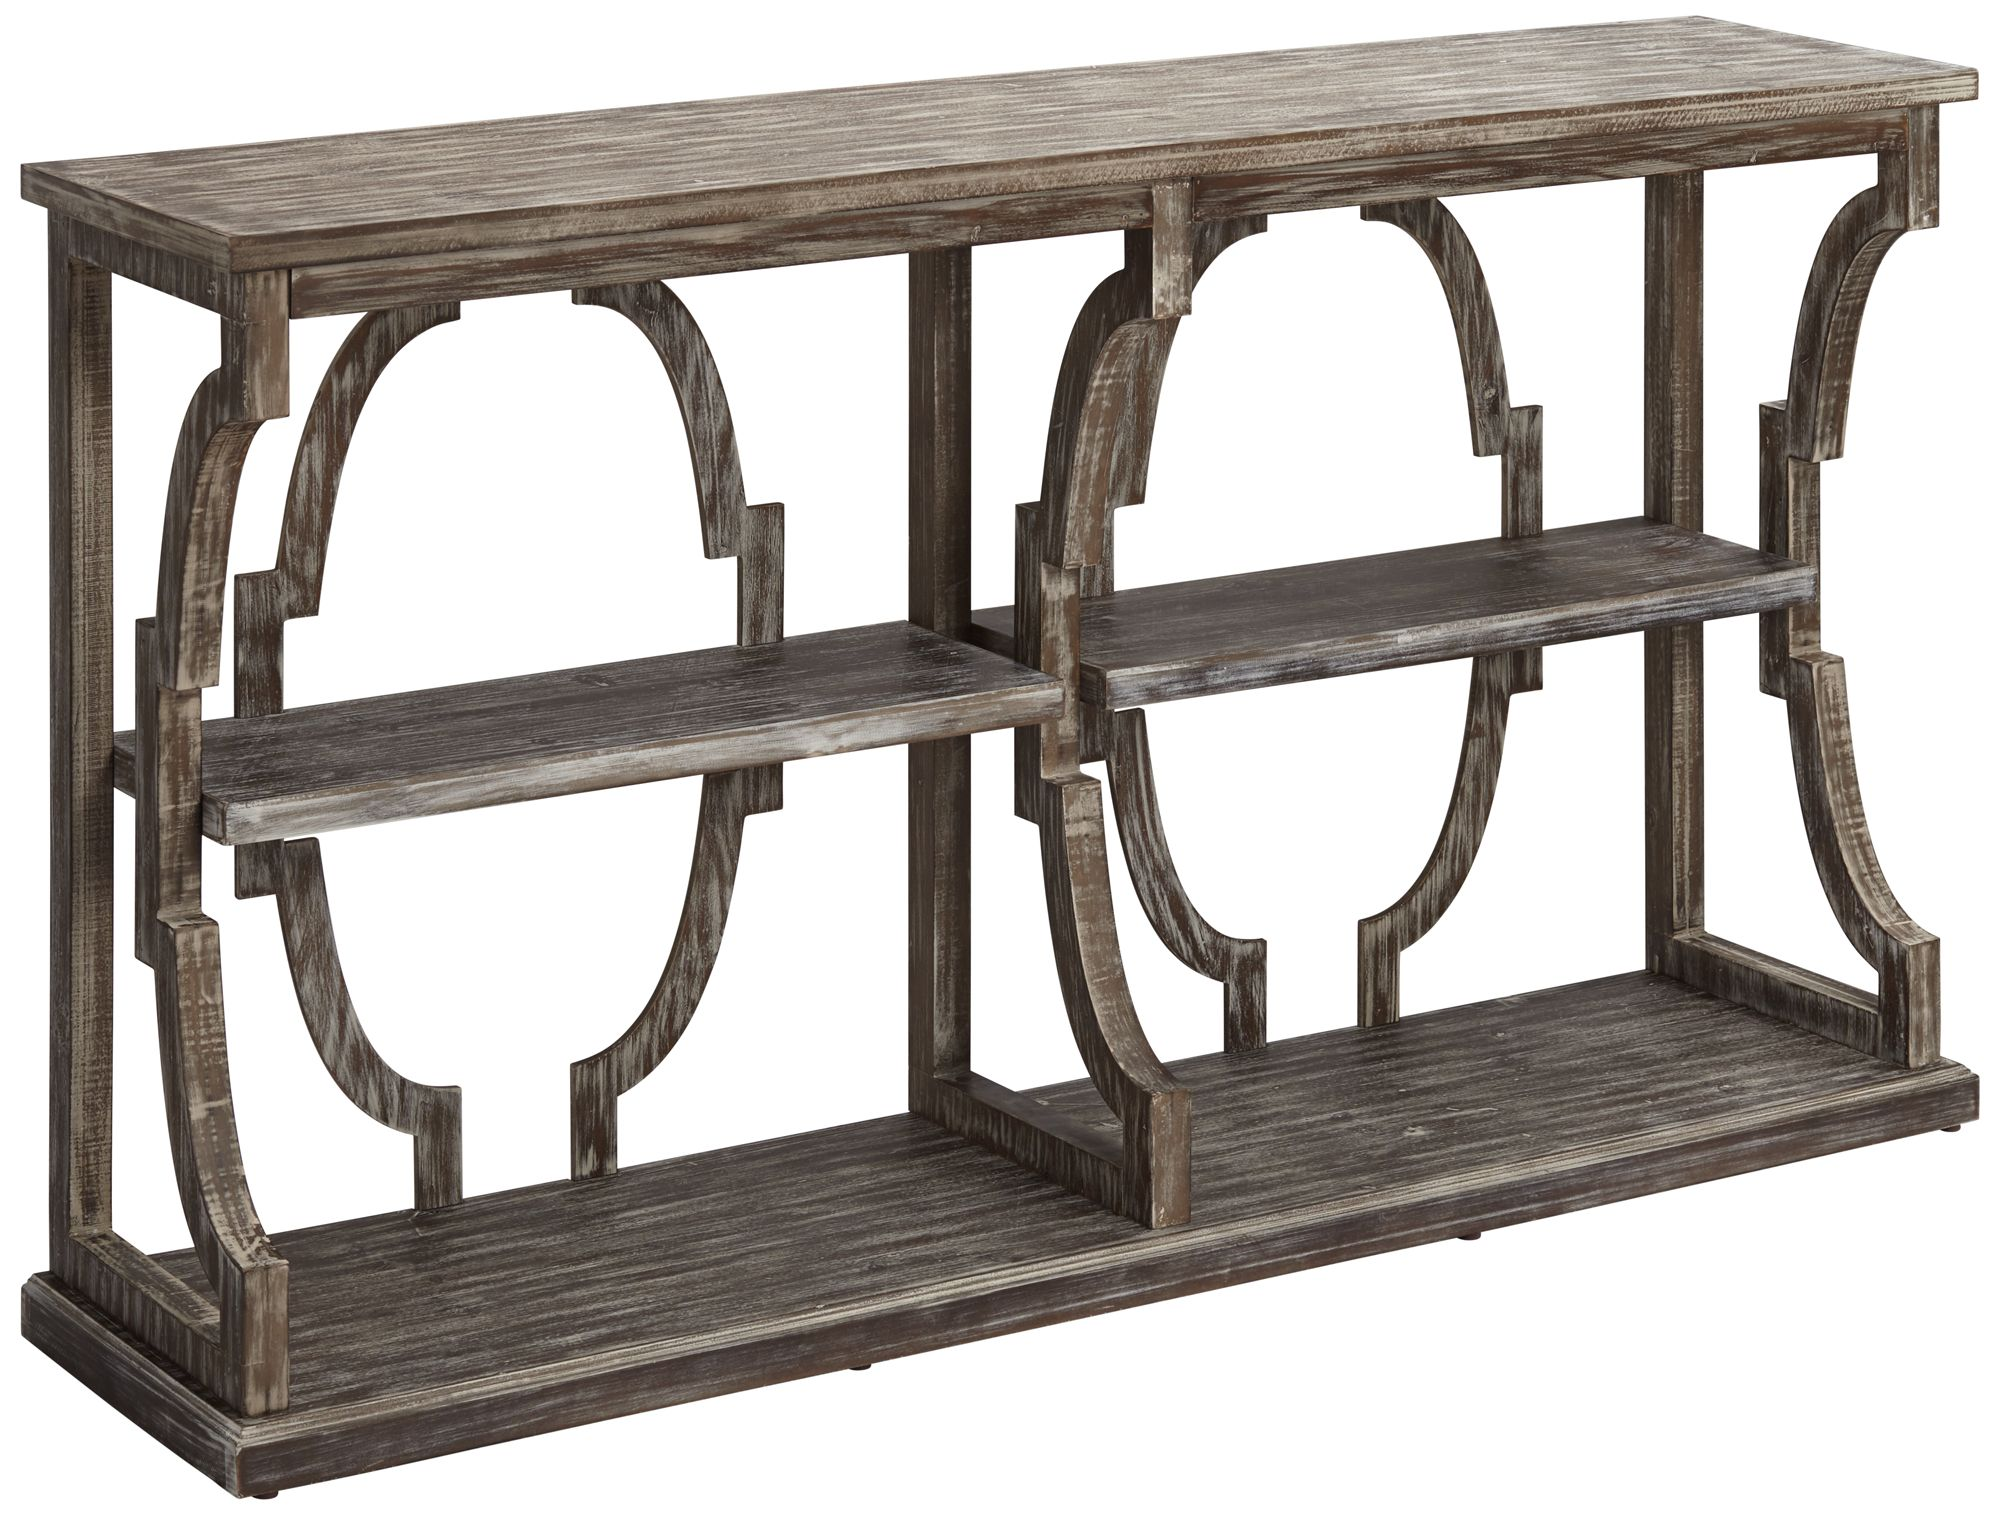 Crestview Collection Stockton Chestnut 3 Tier Console Table